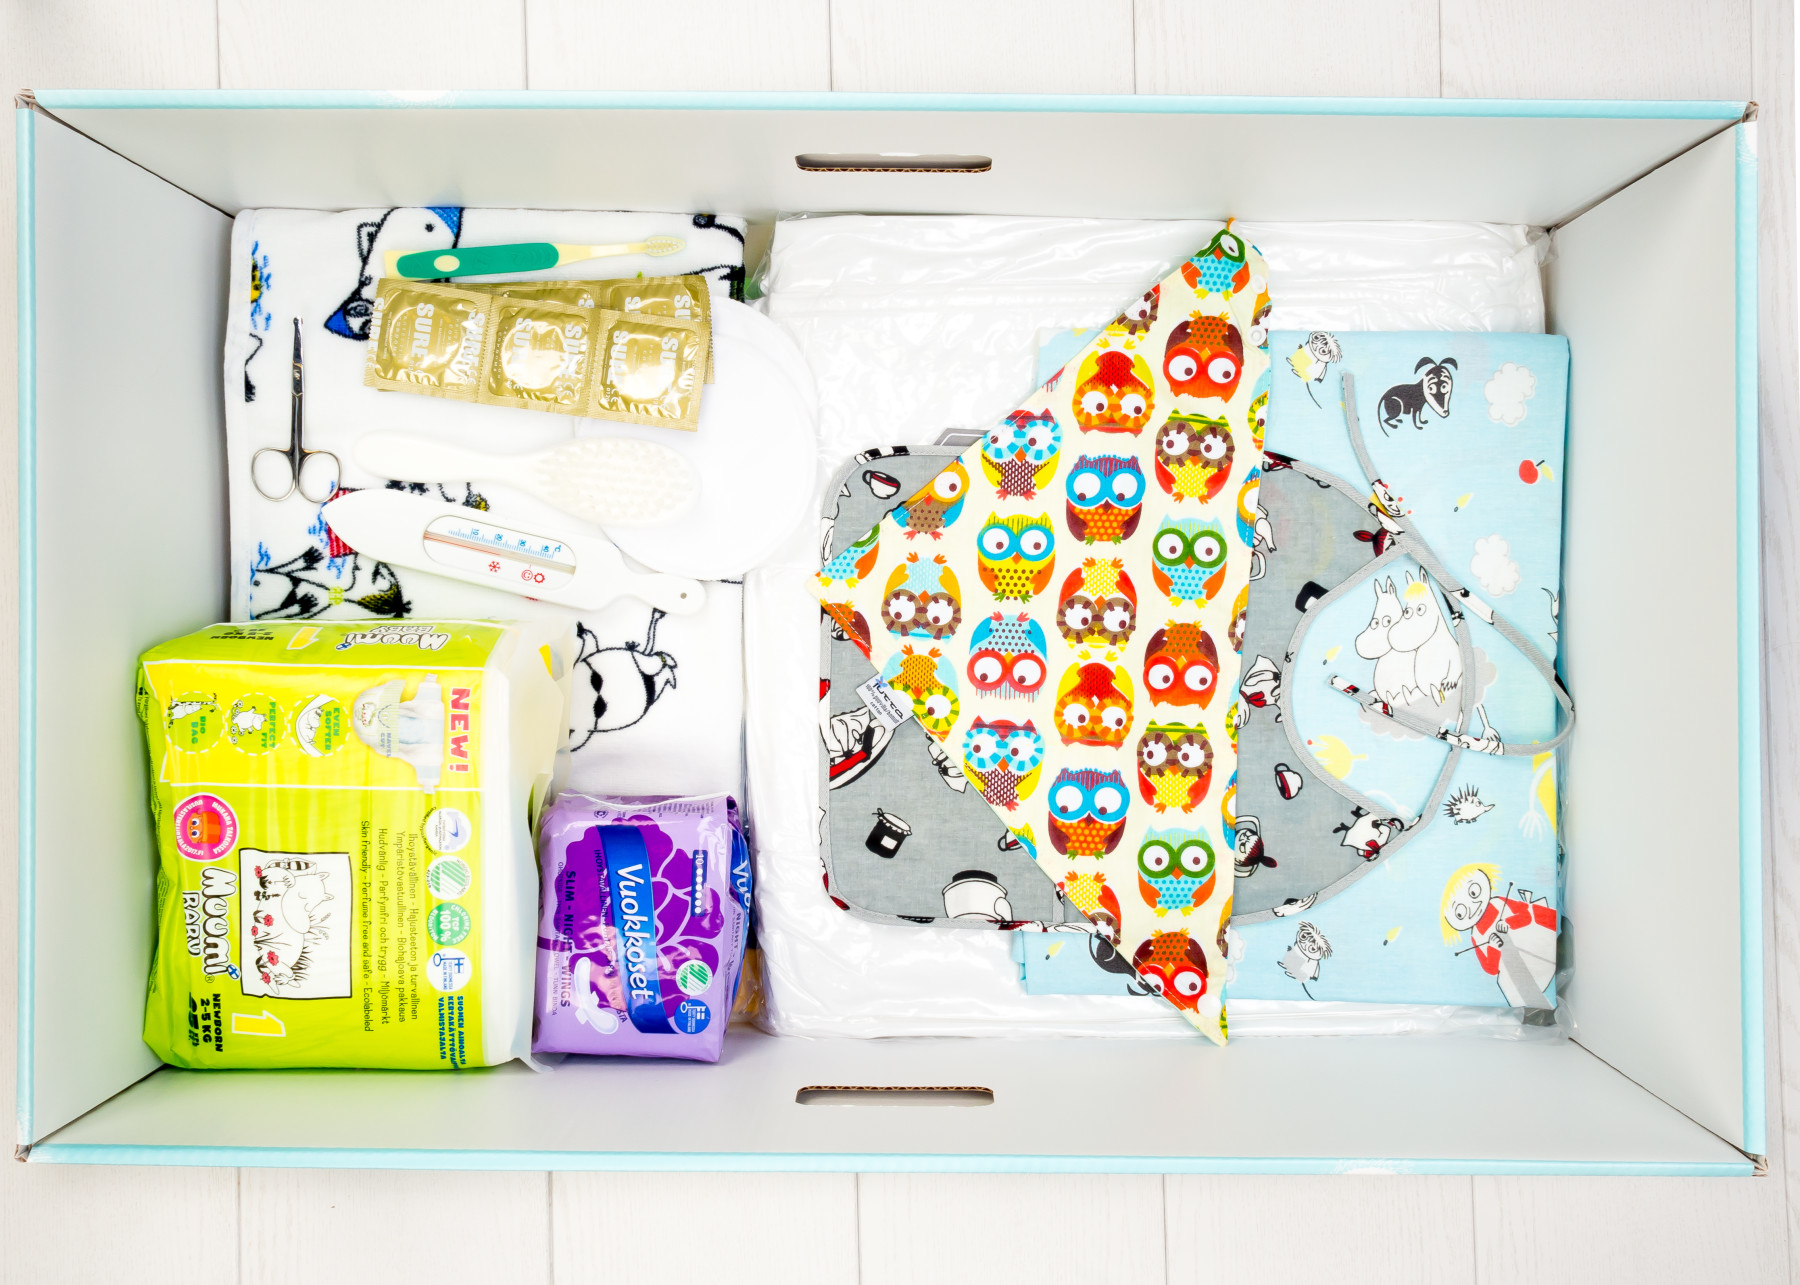 The baby box includes among other things clothes, sleeping bag, bedsheets, nail clippers, thermometer, reusable nappies and a teething ring. Both the baby box and the original maternity package also include condoms.